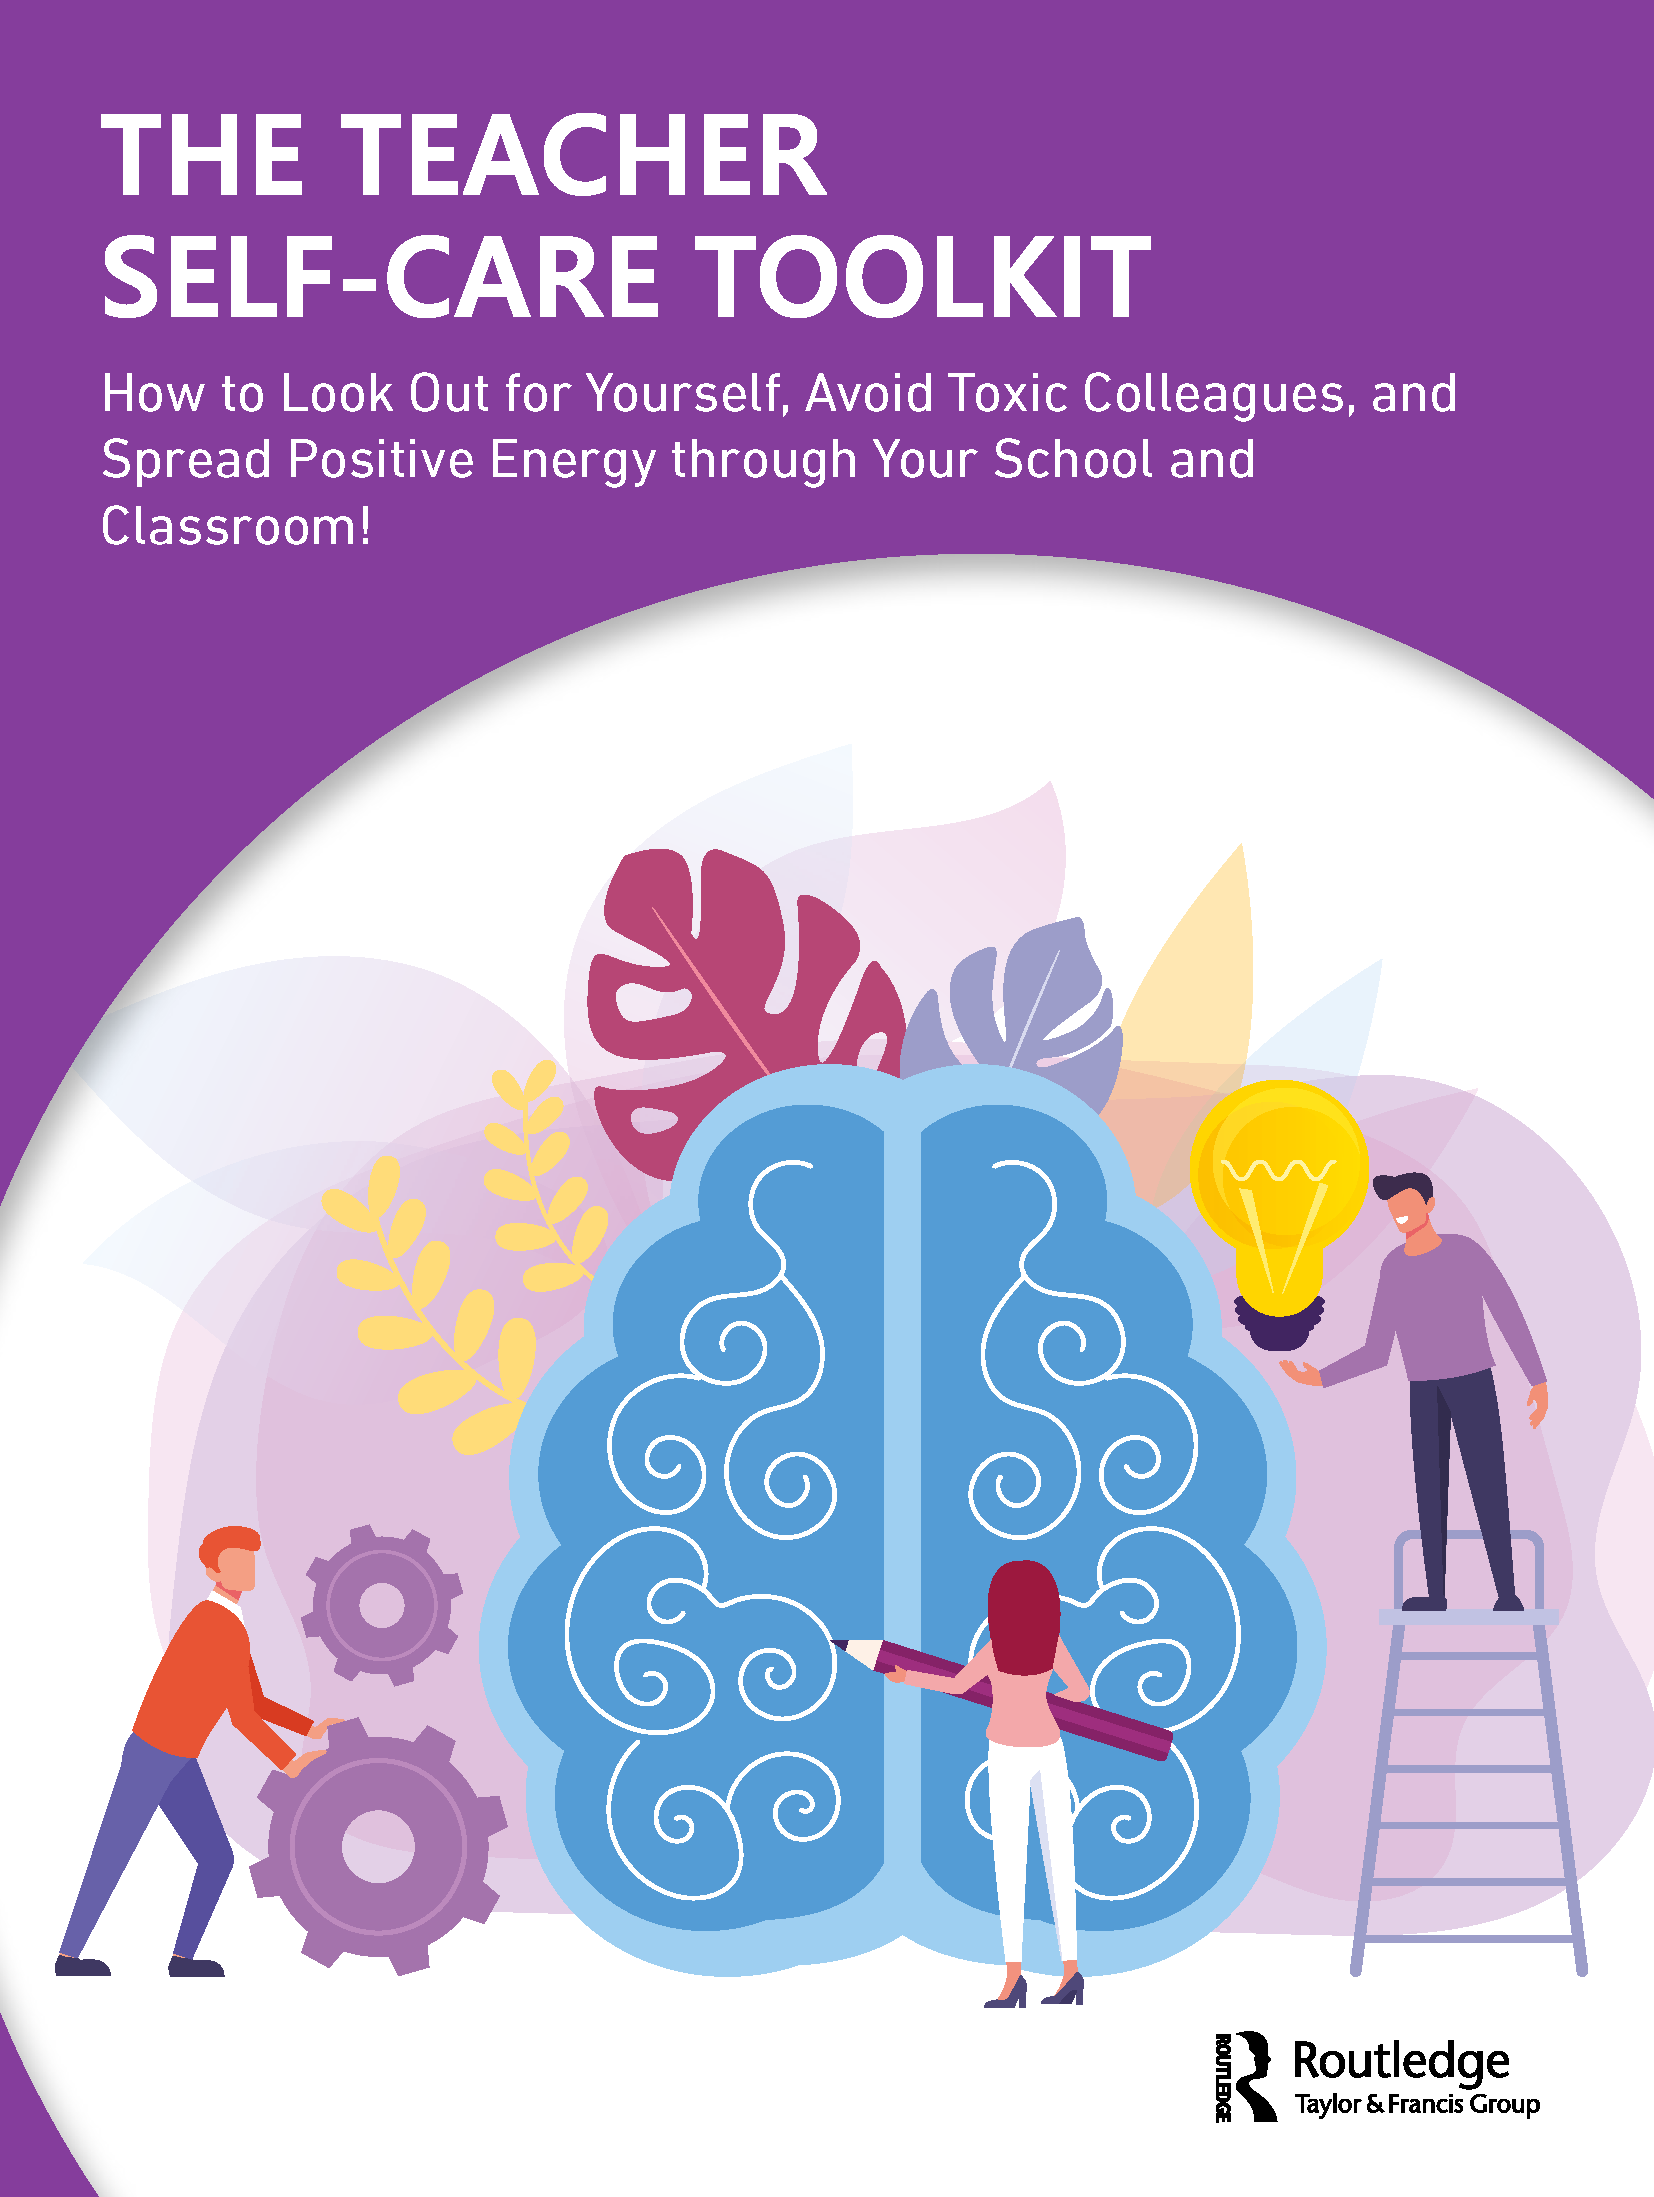 The Teacher Self-Care Toolkit